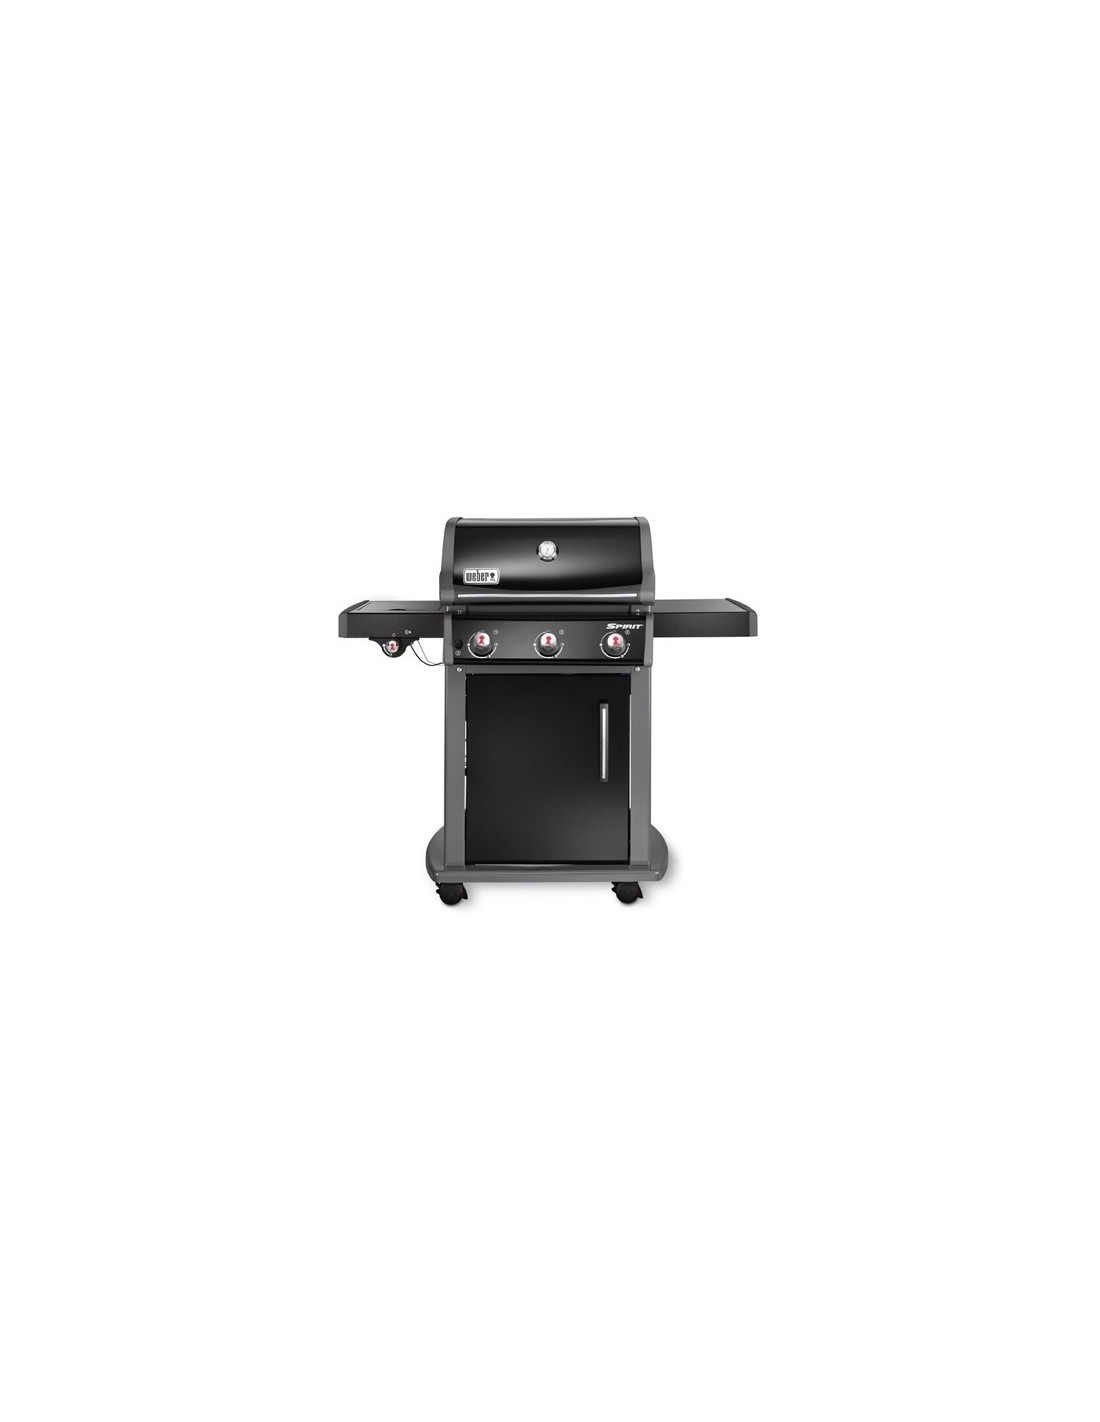 barbecue weber gaz barbecue au gaz weber q3000 leroy merlin barbecue gaz weber q 3000 titanium. Black Bedroom Furniture Sets. Home Design Ideas